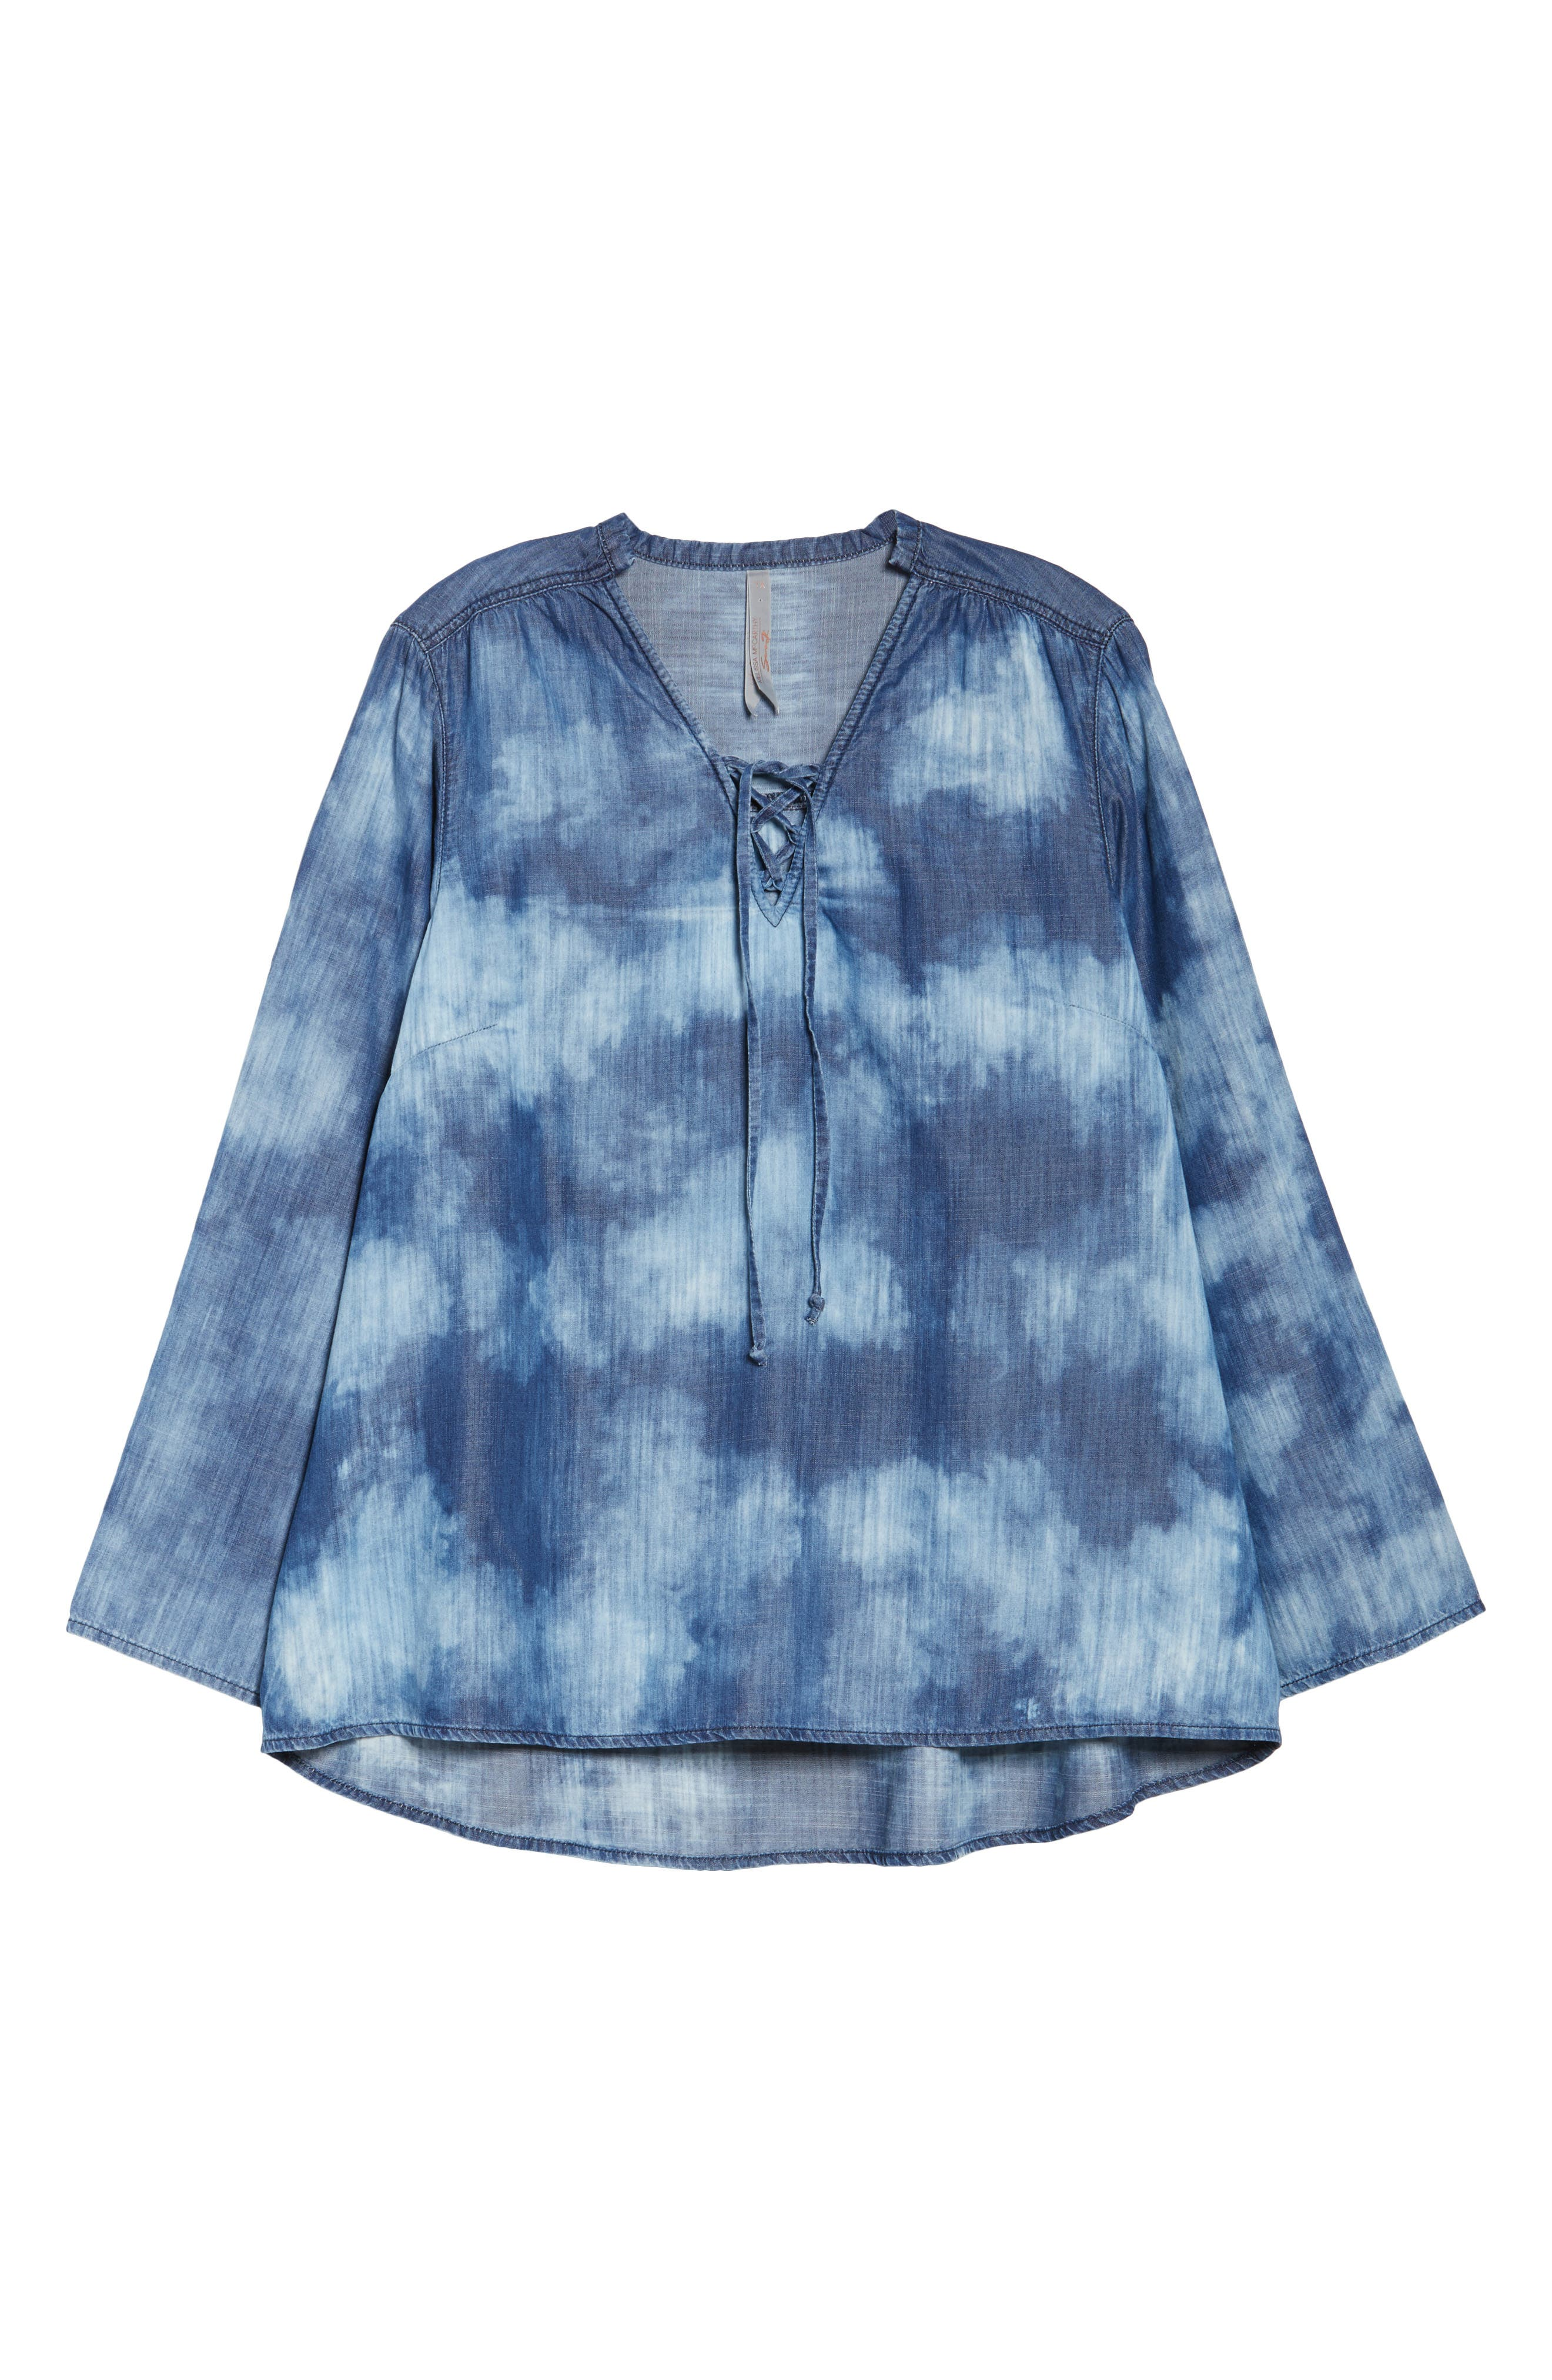 Bell Sleeve Top,                             Alternate thumbnail 6, color,                             422